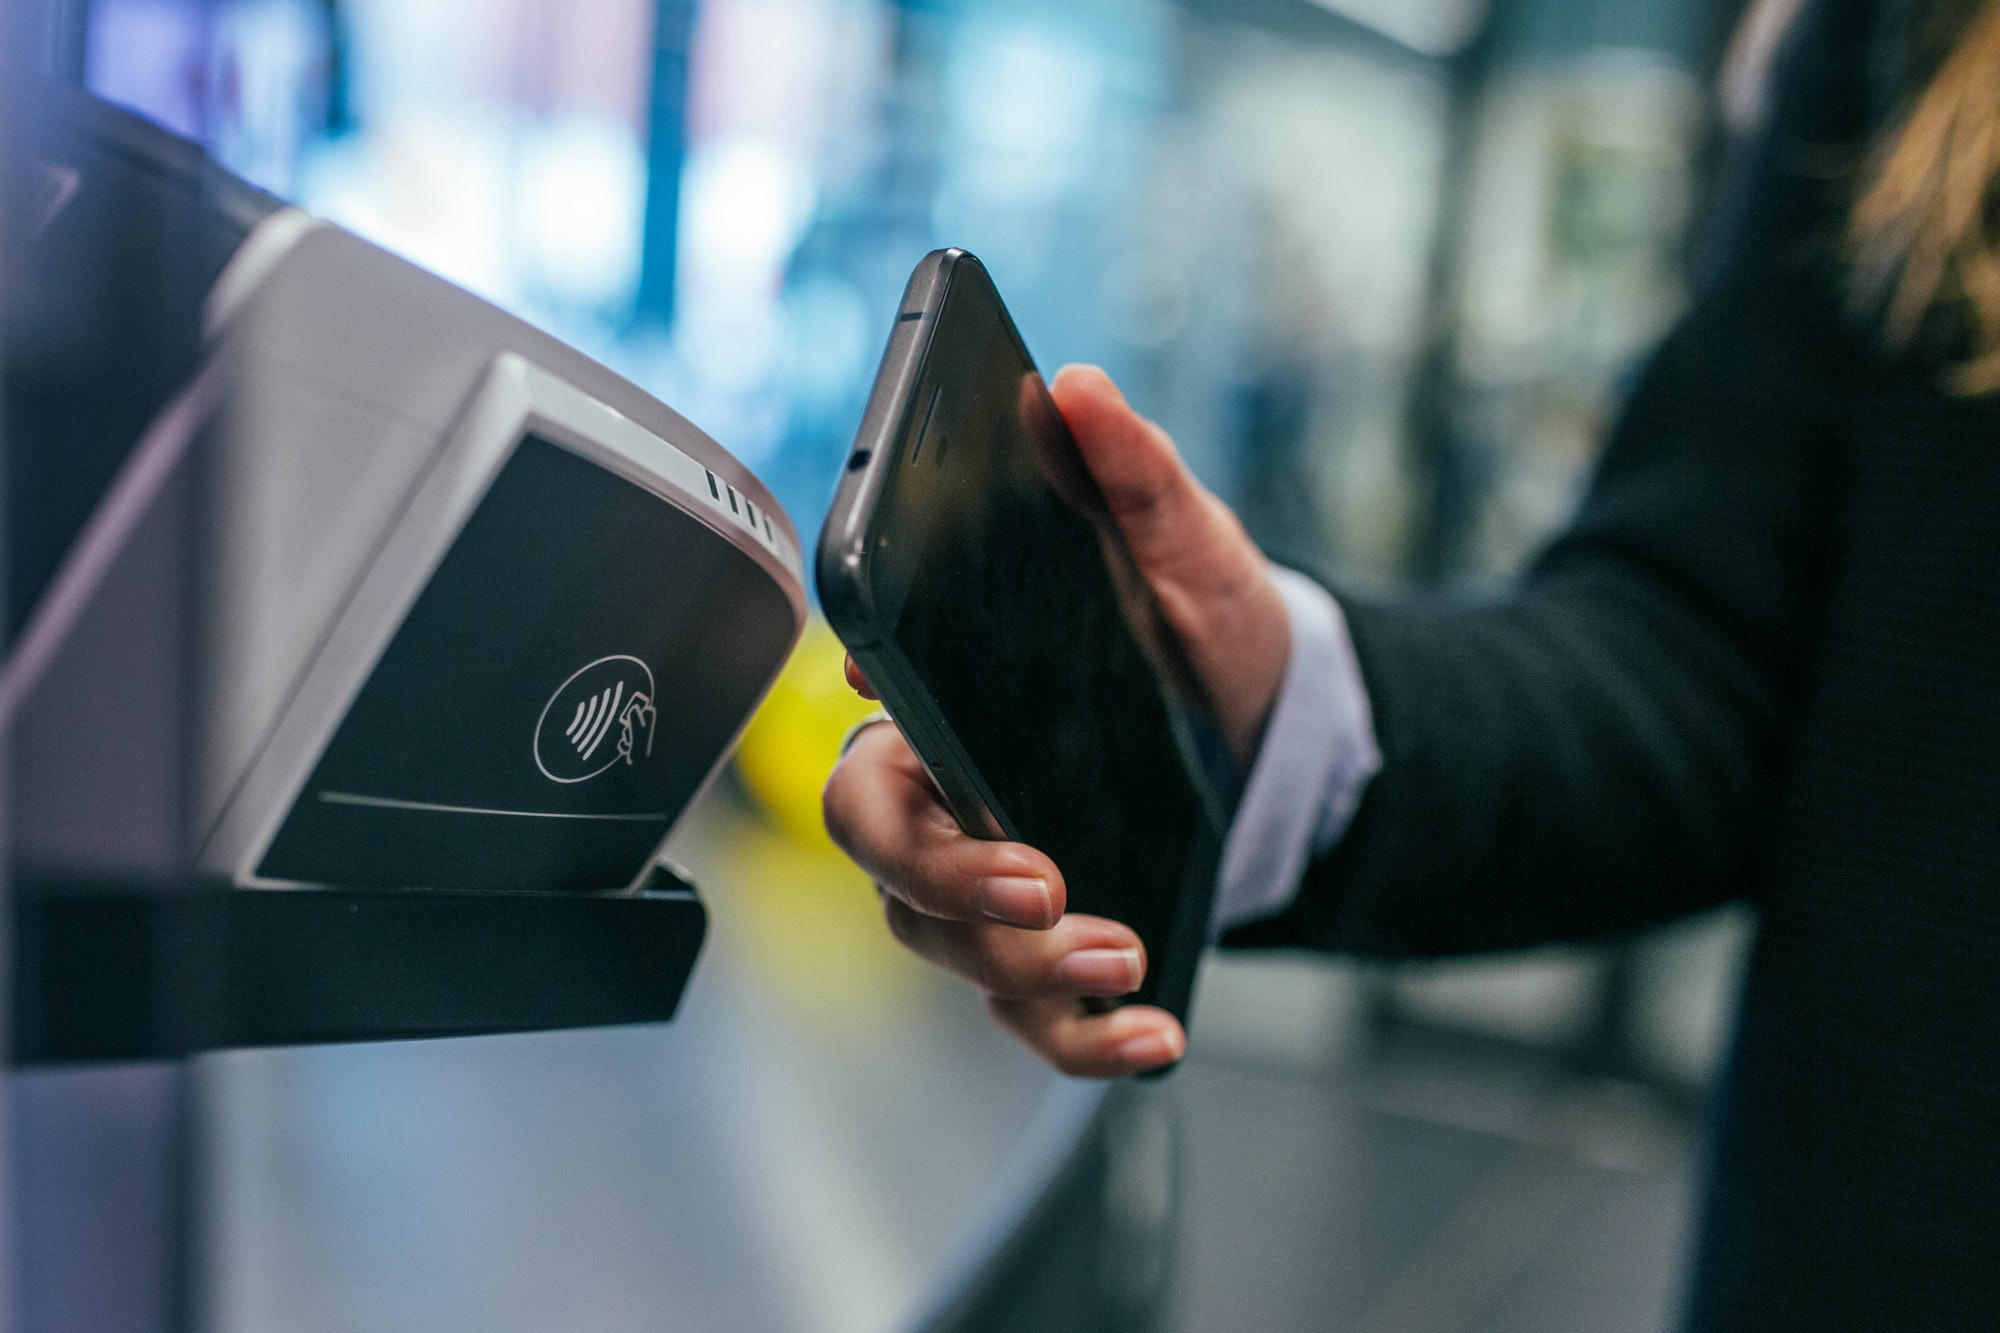 Off-chain could make payments faster.